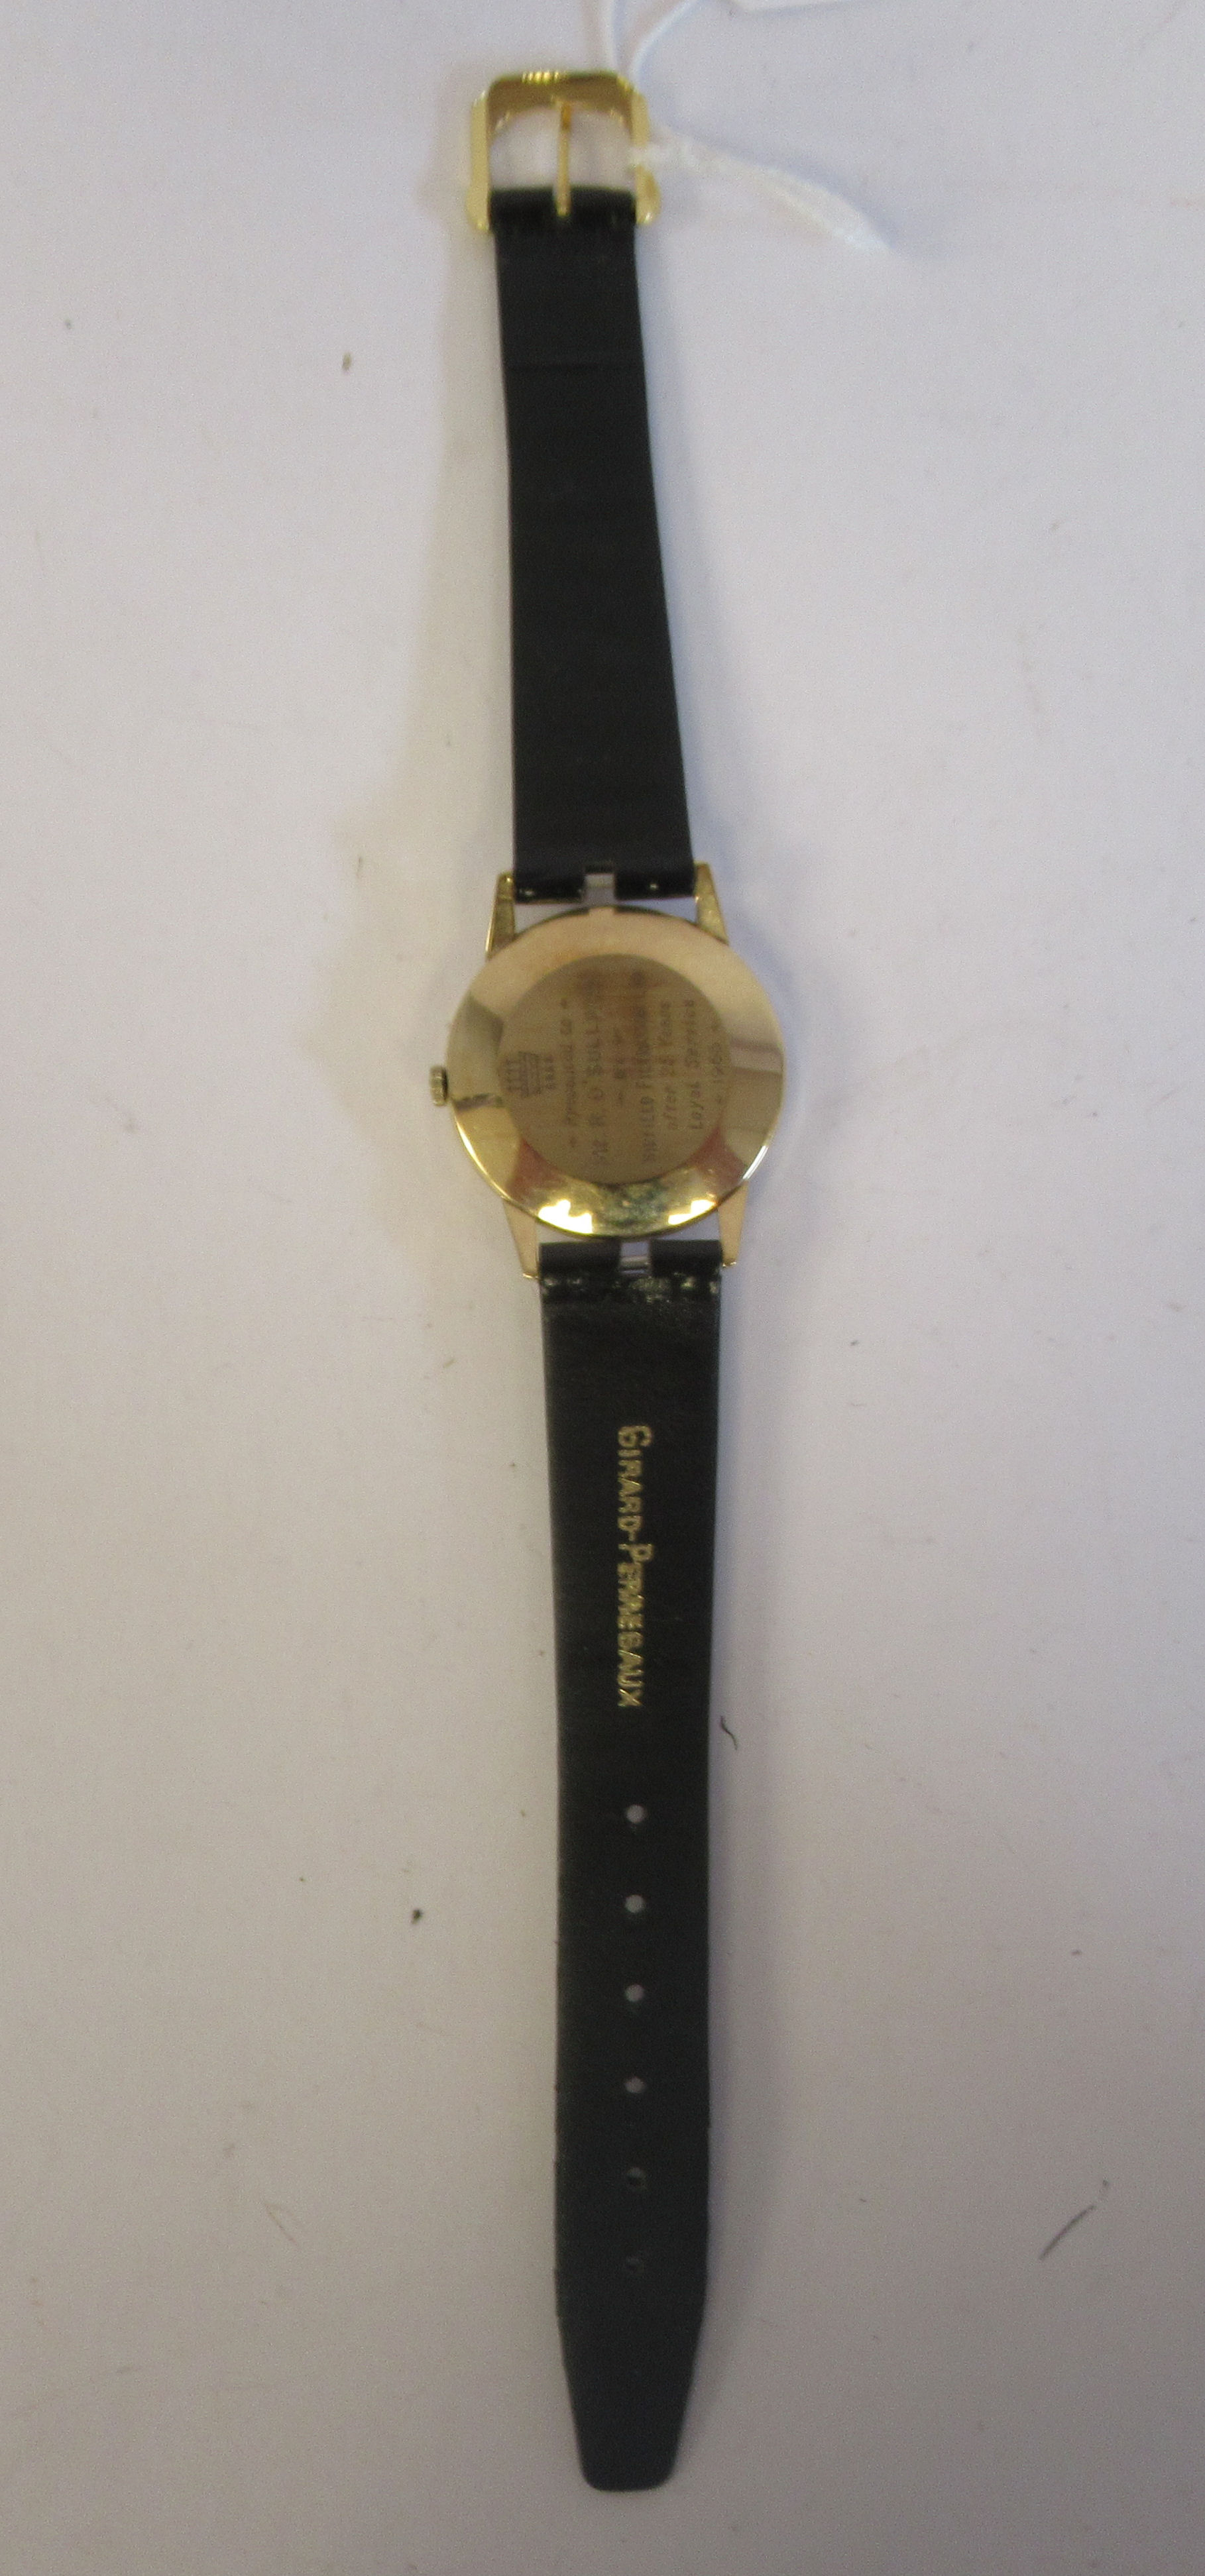 A 1966 Giraird-Perregaux 9ct gold cased wristwatch, the movement with sweeping seconds, faced by - Image 5 of 5